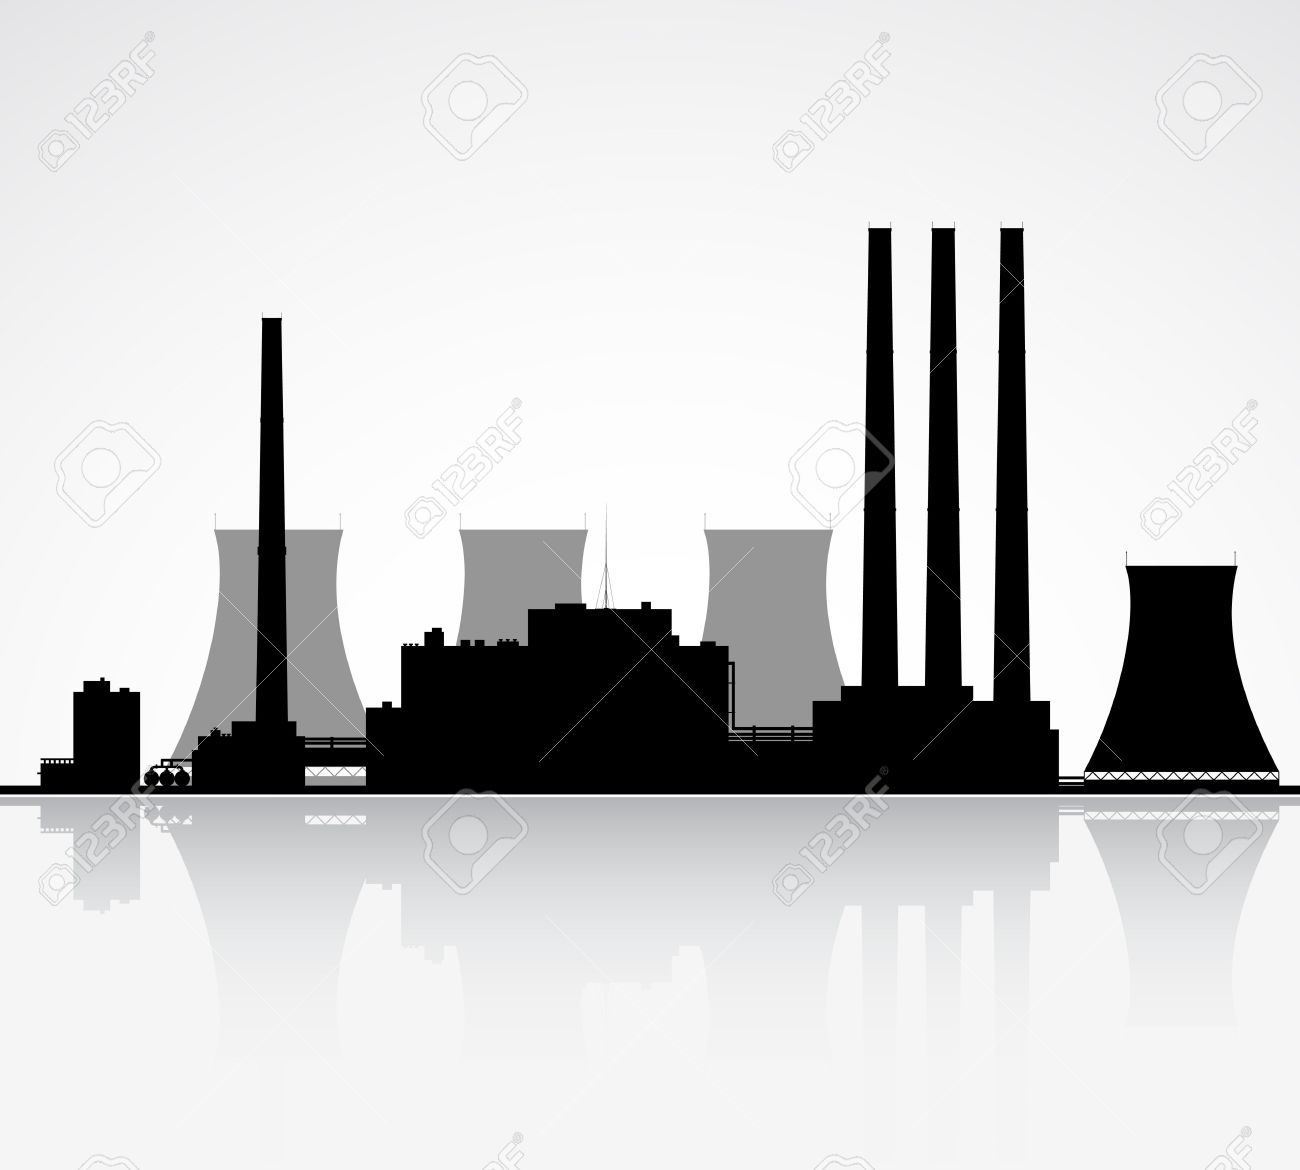 Silhouette Of A Nuclear Power Plant Illustration Royalty Free Cliparts Vectors And Stock Illustration Image 15173453